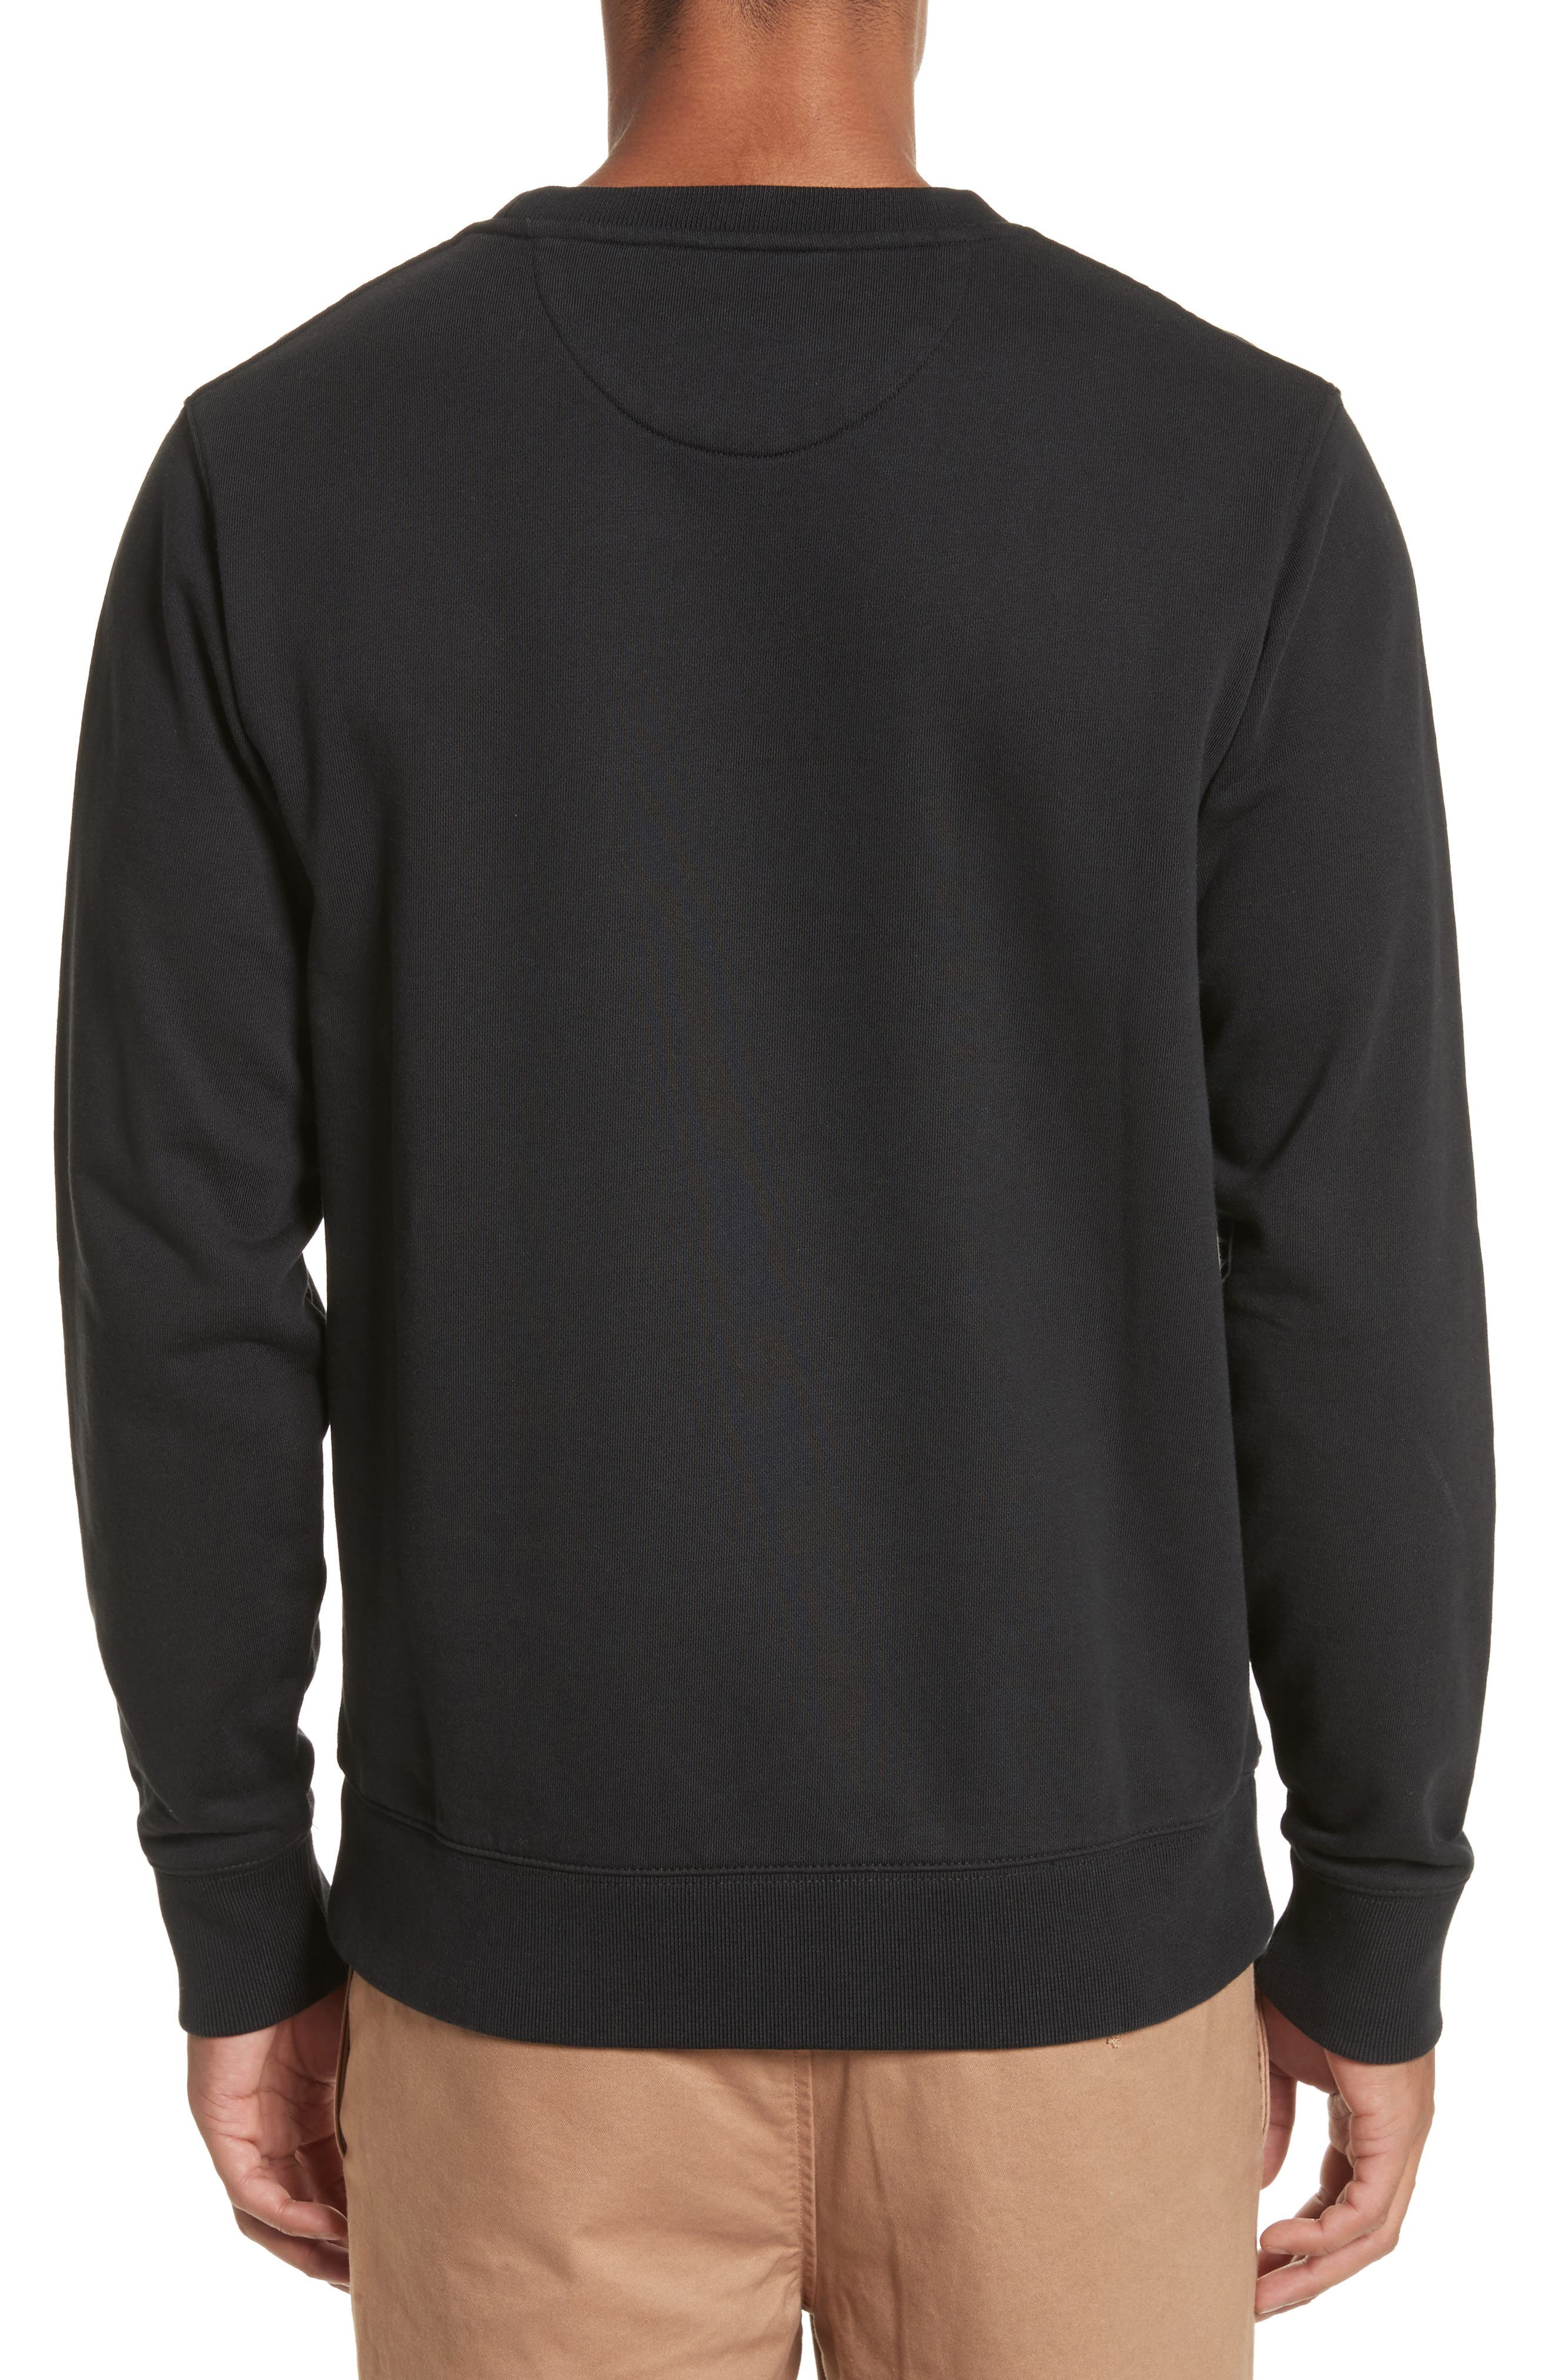 Bowery Miller Graphic Sweatshirt,                             Alternate thumbnail 2, color,                             Black